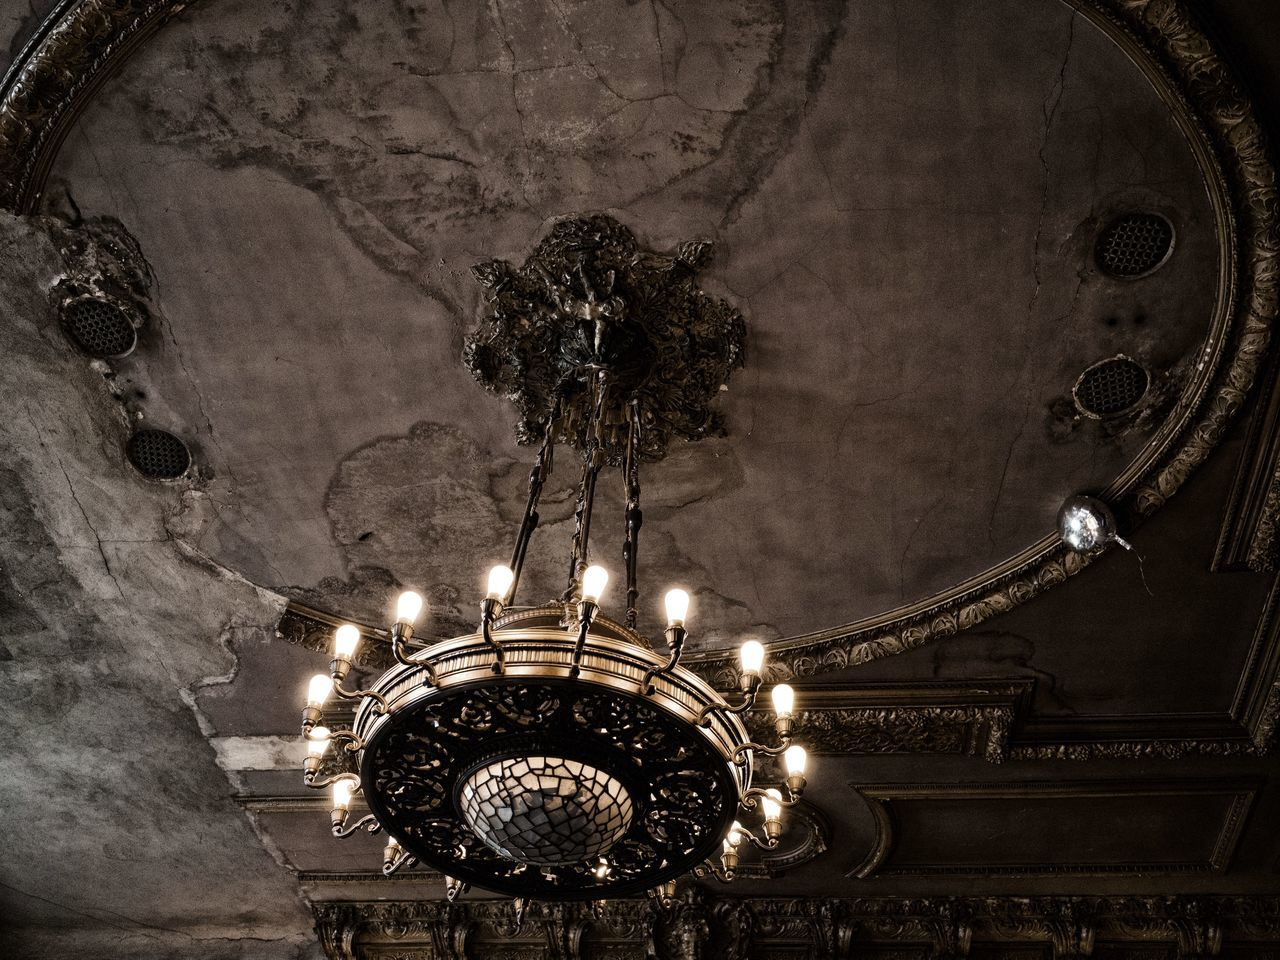 Candles Dining Room Table Cloth Architecture Built Structure Candle Lit Dinner Chandalier Close-up Dance Hall Day Decadent East Berlin Faded Elegance Germany Hanging Illuminated Indoors  Light Bulb Lighting Equipment Low Angle View Luxury No People Pre-war